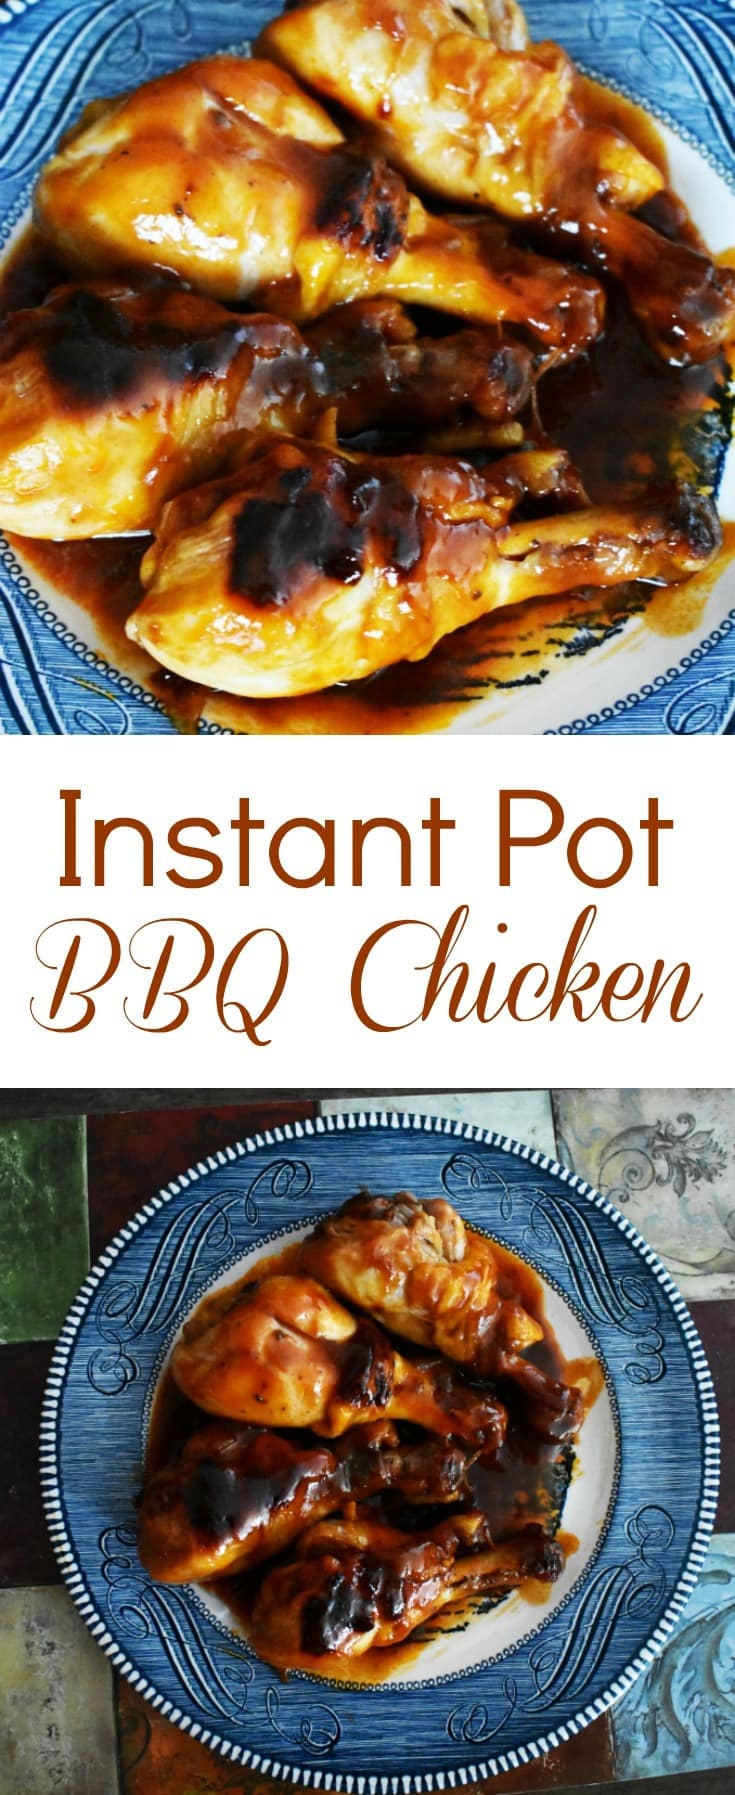 I'm in love with my Instant Pot and keep looking for new recipes my family will enjoy. These Instant Pot BBQ Chicken drumsticks were a big hit!